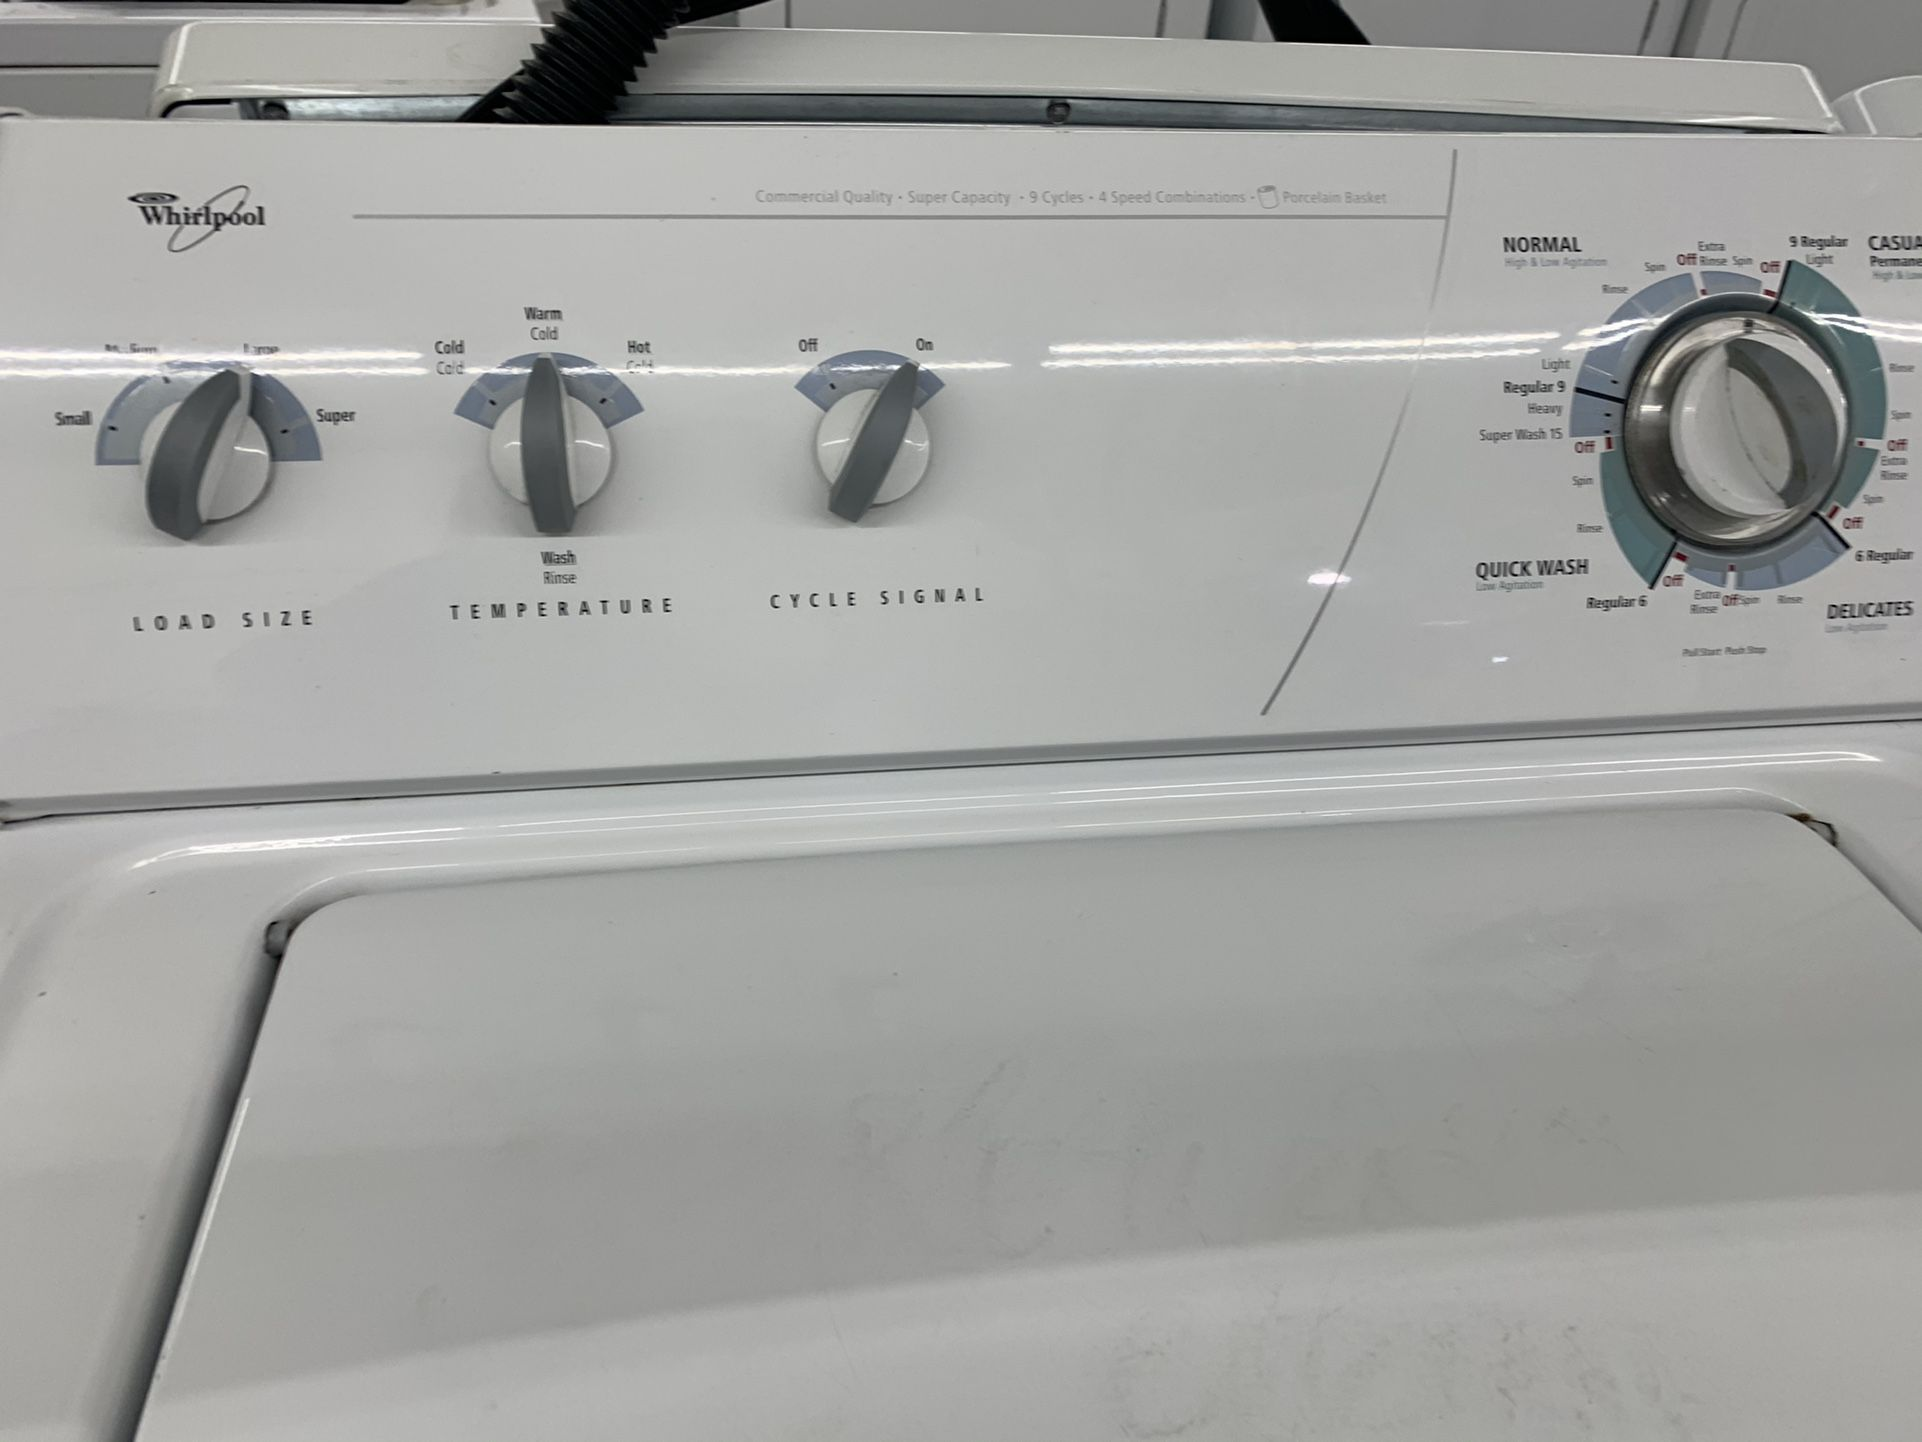 Whirlpool Washer - Heavy Duty! 13 Options! Super Capacity! 30-Day Guarantee! Delivery Available Today